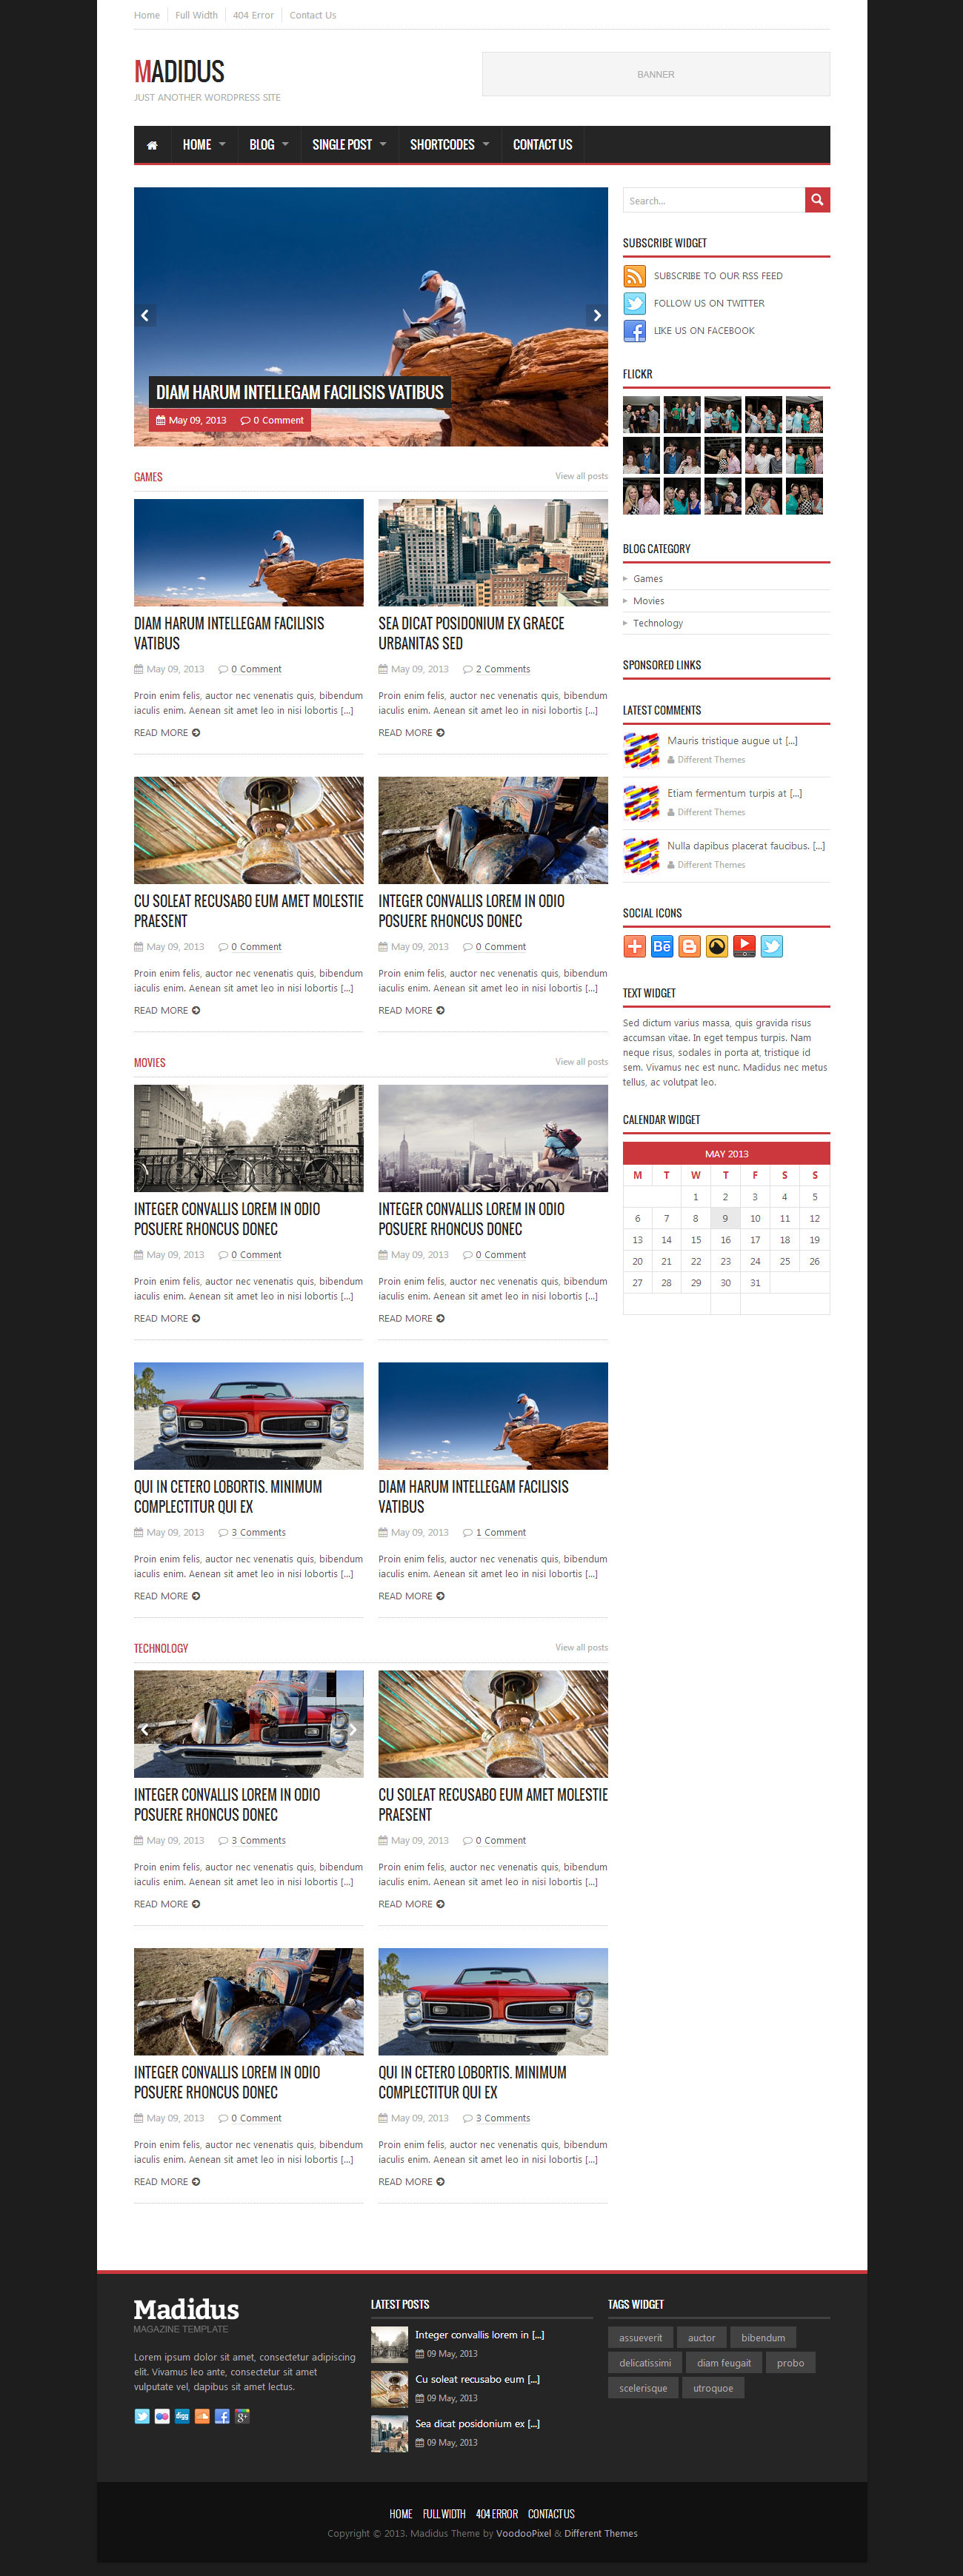 Madidus - Blog & Magazine Theme